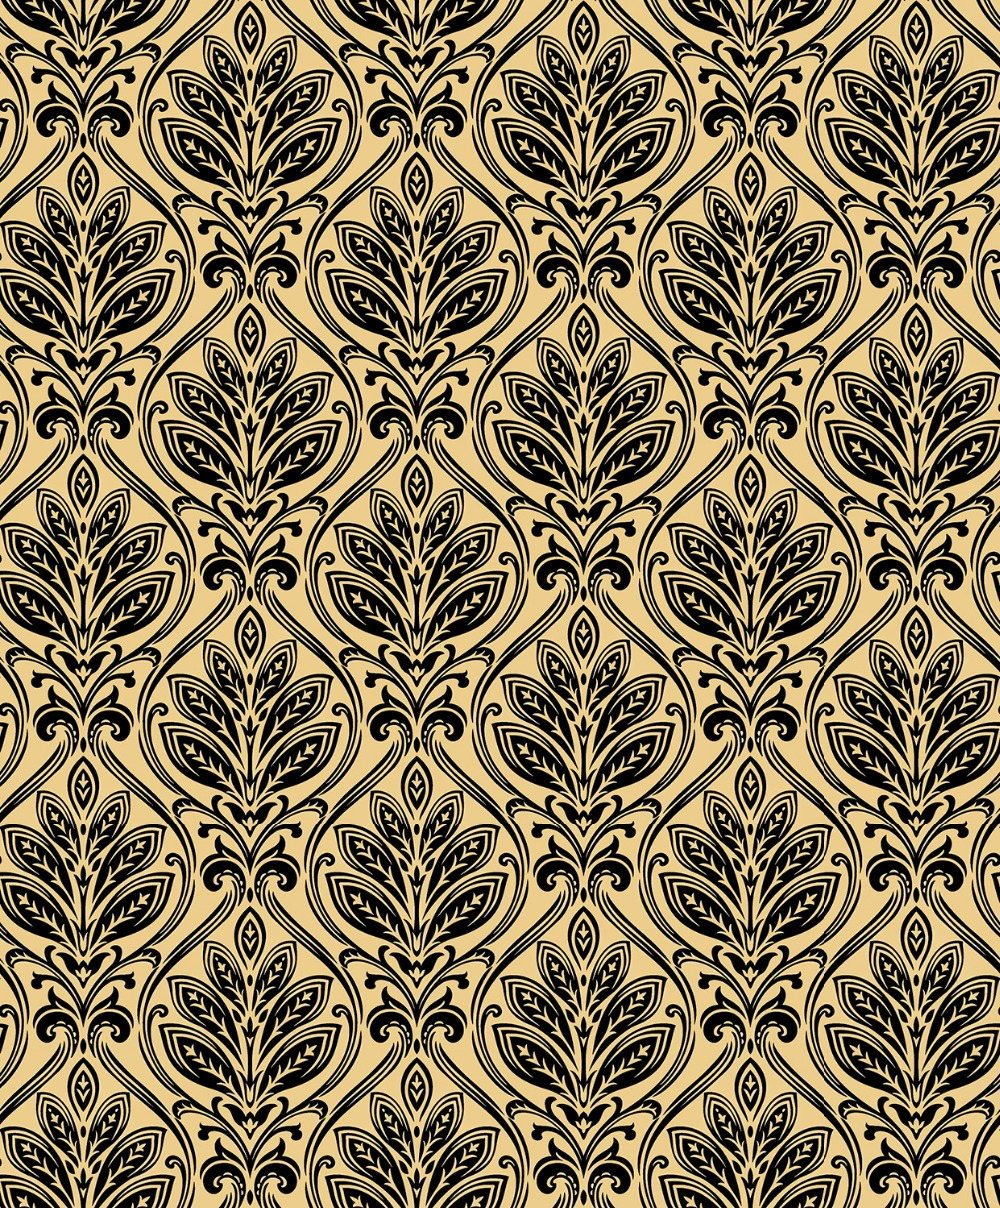 Luxury Black Velvet Flocked Classic Damask Champagne Gold Wallpaper Roll velvet flocked